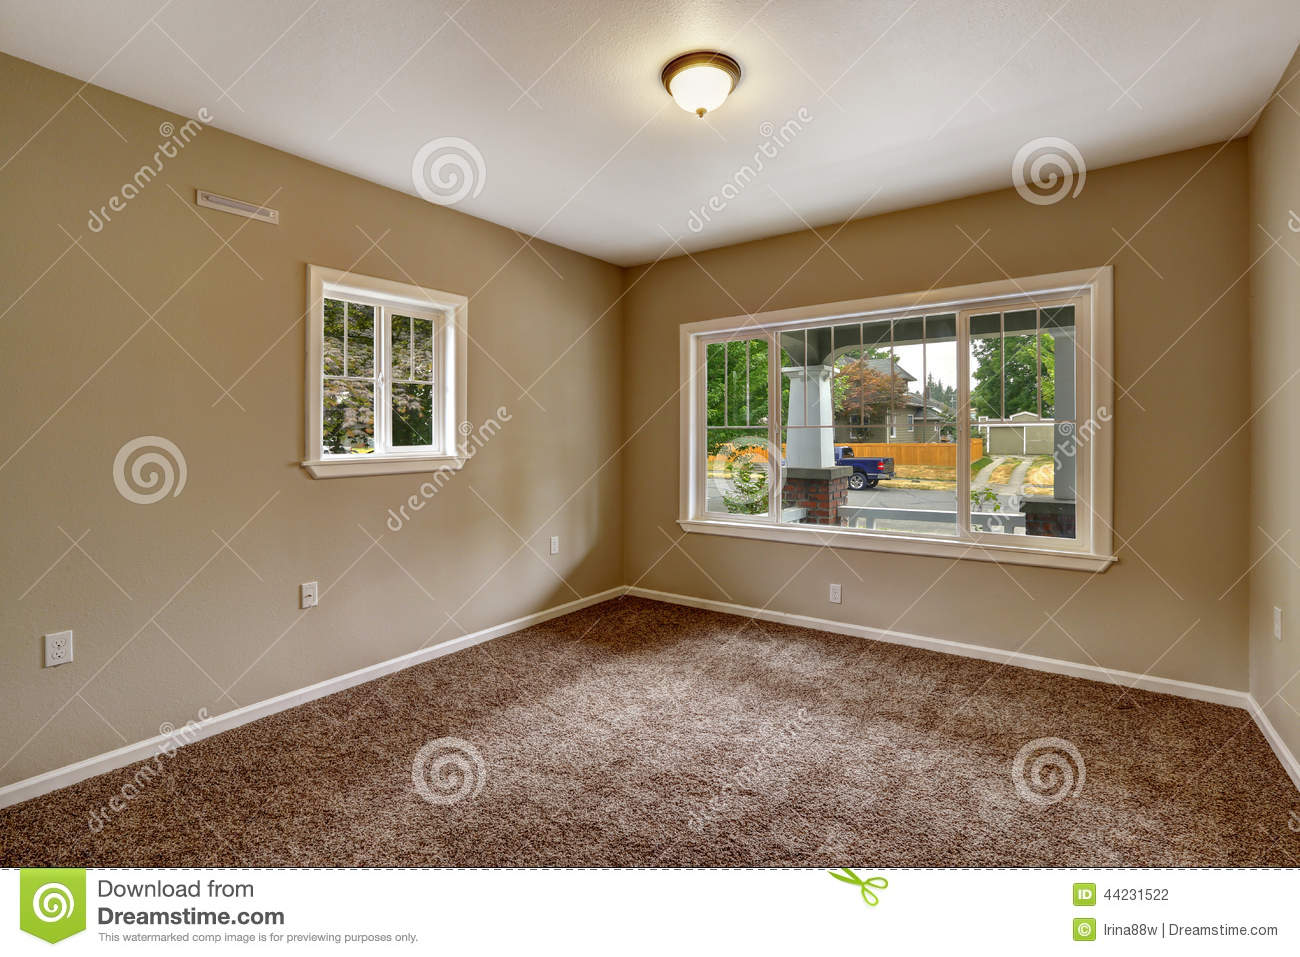 Beige Empty Room With Brown Carpet Floor Stock Photo ...